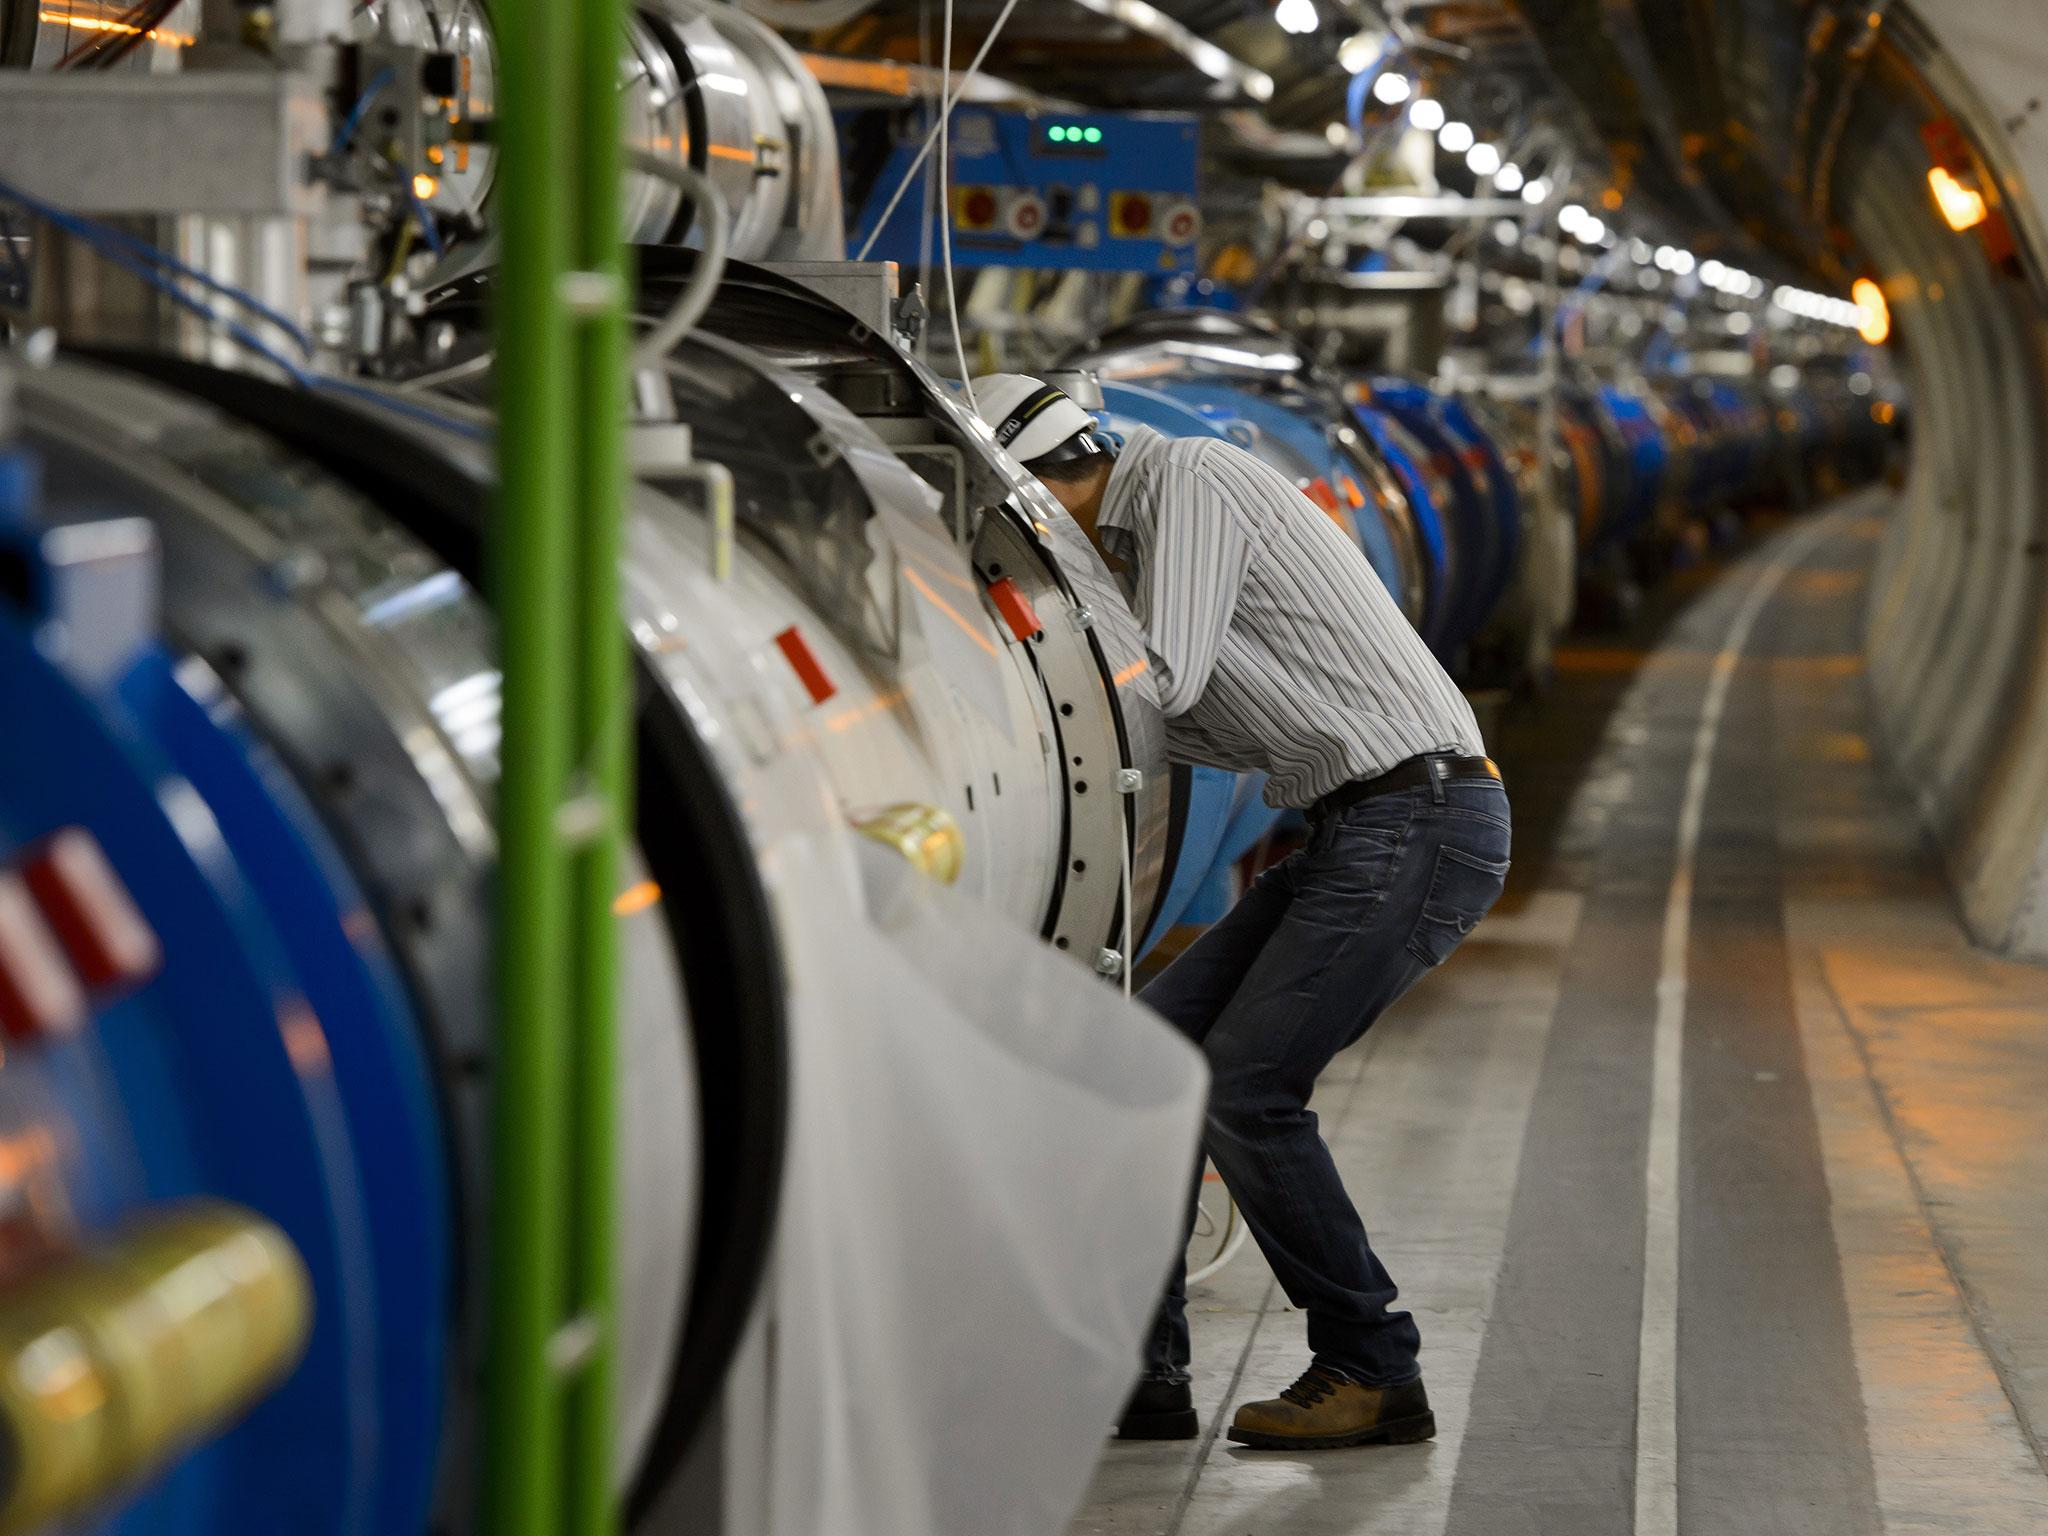 Cern laboratory made famous for work on Large Hadron Collider embroiled in homophobia row | The ...